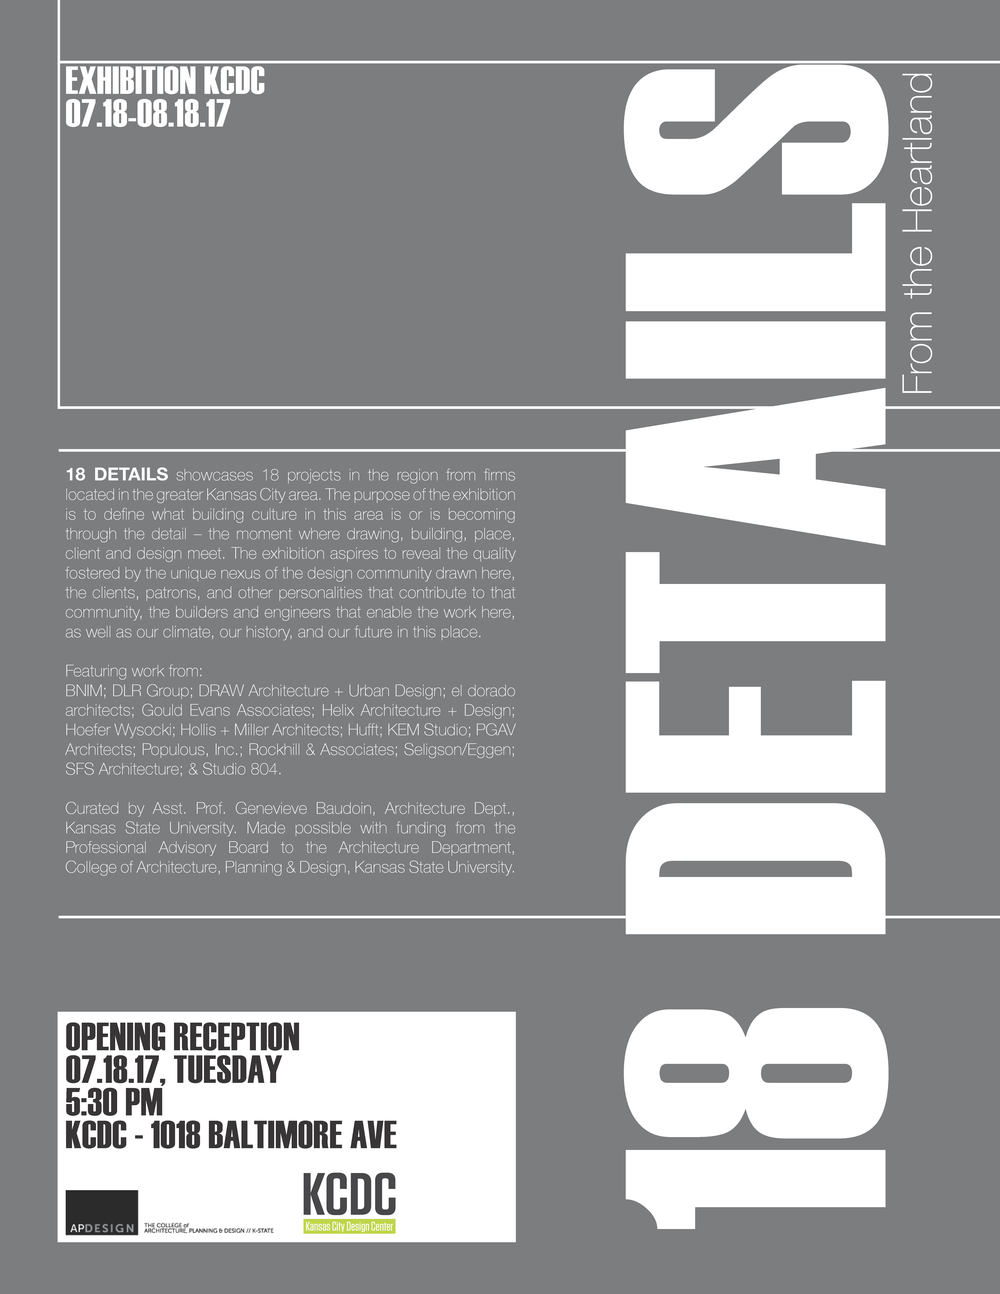 The KCDC Is Pleased To Host 18 Details, An Exhibition Of 18 Projects In The  Region From Firms Located In The Greater Kansas City Area, Curated By Kansas  ...